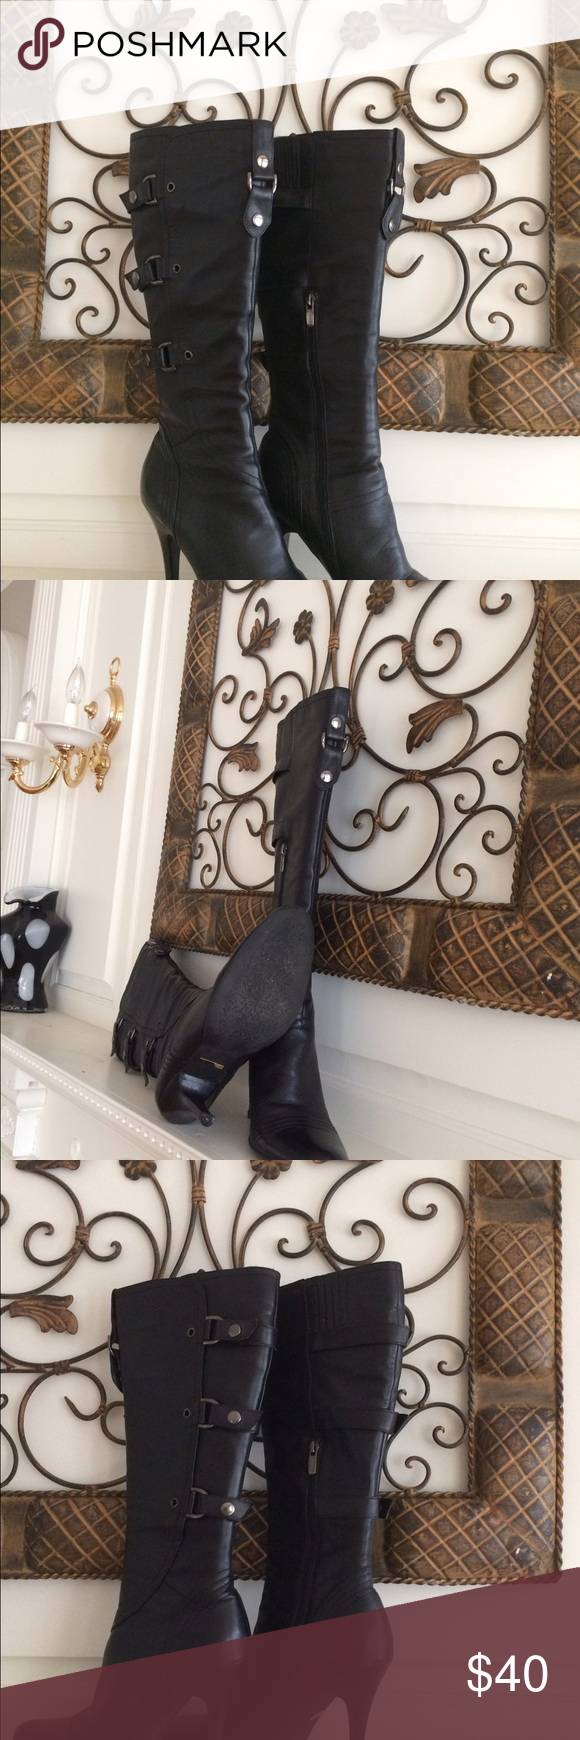 """RICIMA BLACK HELLS BOOTS Size 40 This is a pair of boots from RICIMA, these boots have buckles along the side and zippers also, the heels are 4"""" tall. Ricima Shoes Heeled Boots"""